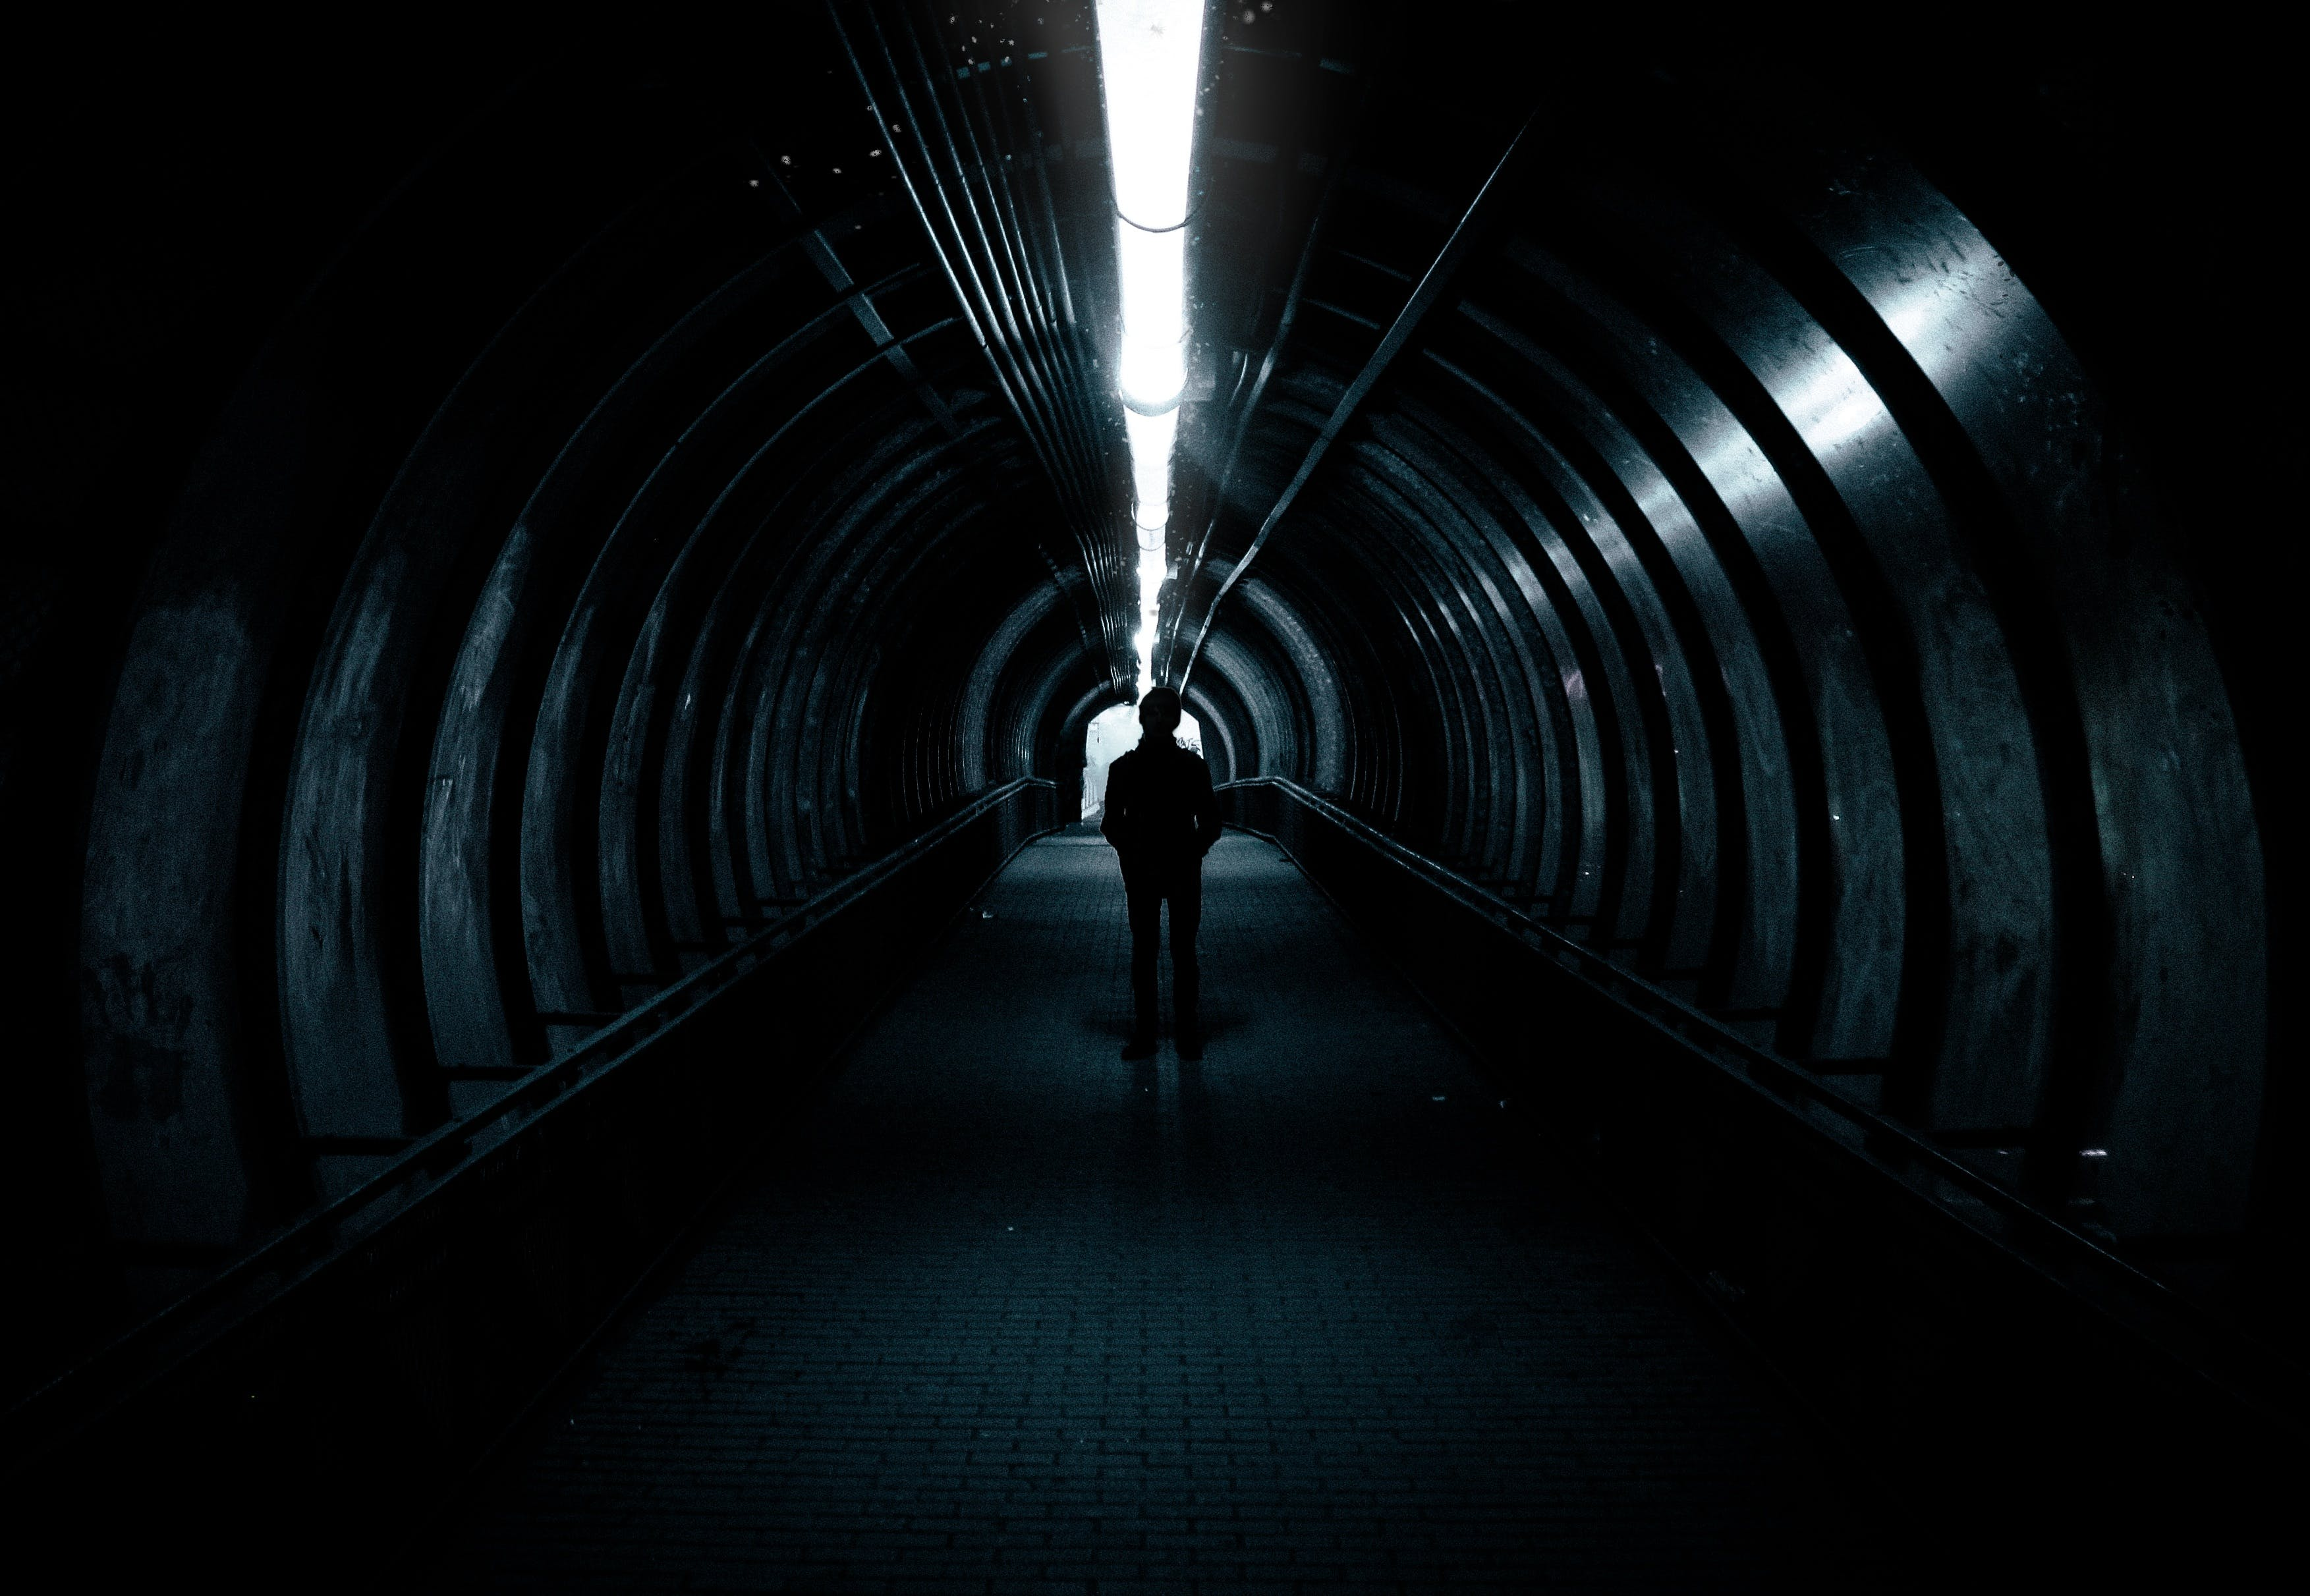 Free stock photo of light, man, person, dark